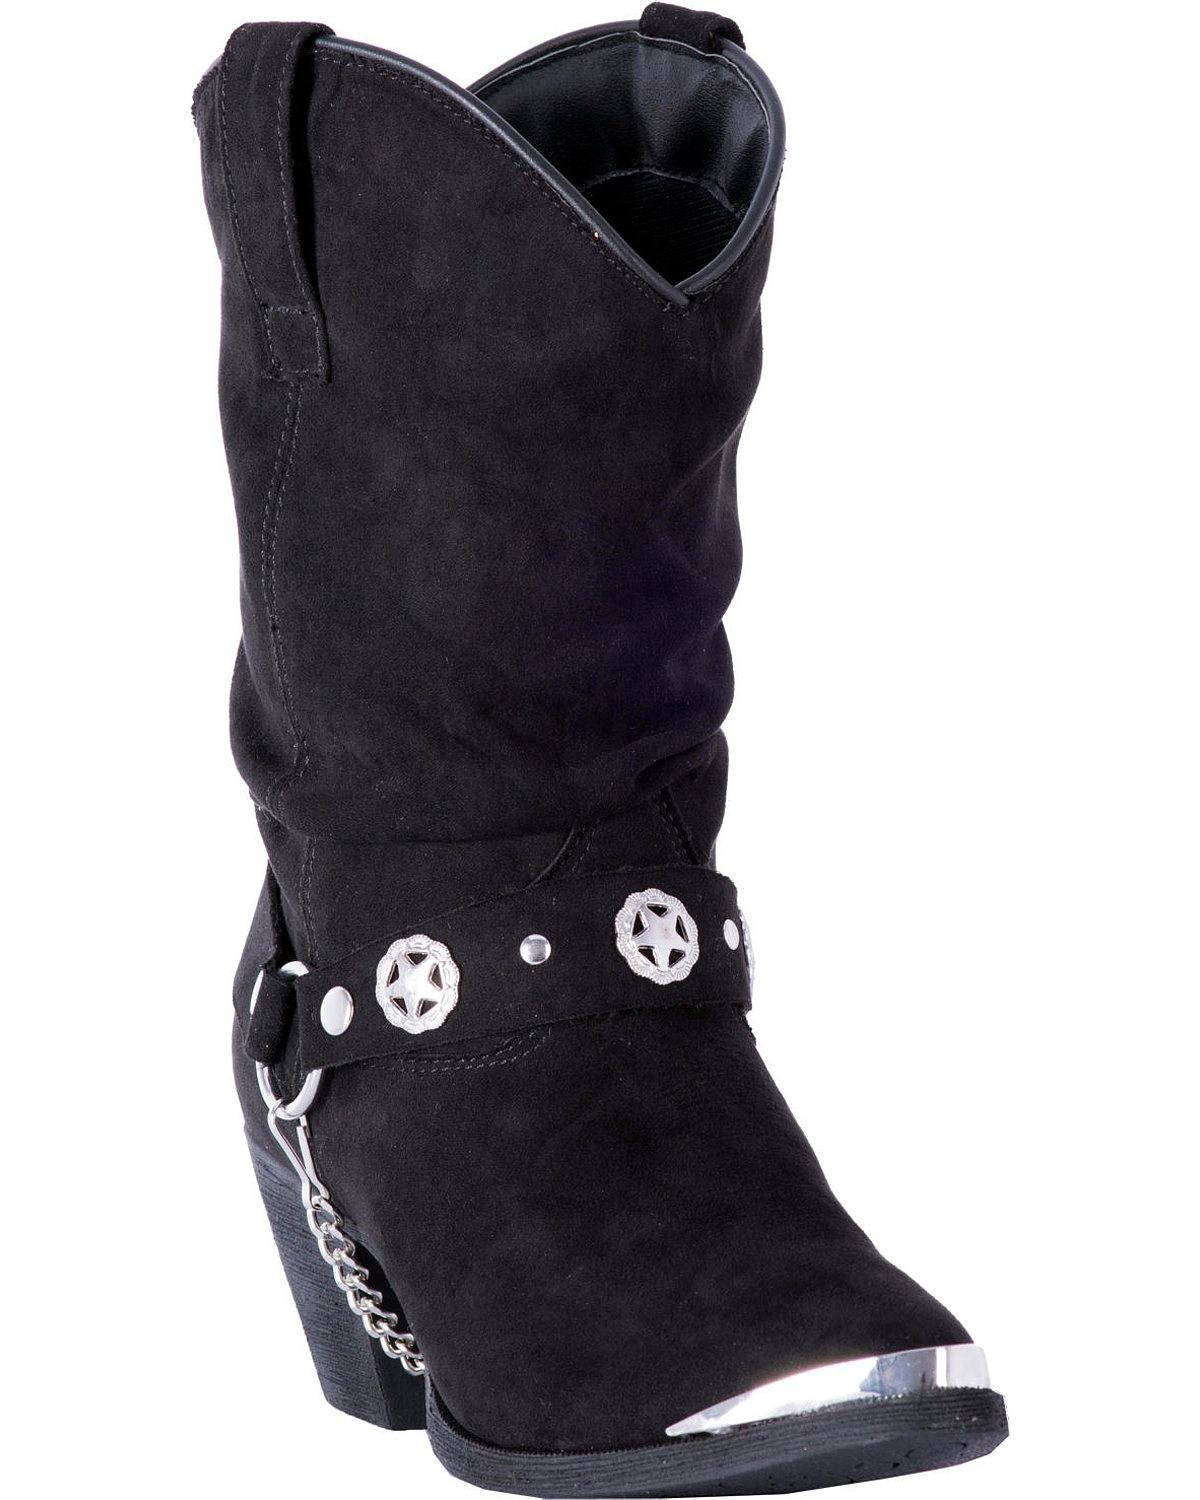 Dingo Women's Camilla Slouch Boot Pointed Toe - Di8920 B078H29FWV 6 B(M) US|Black